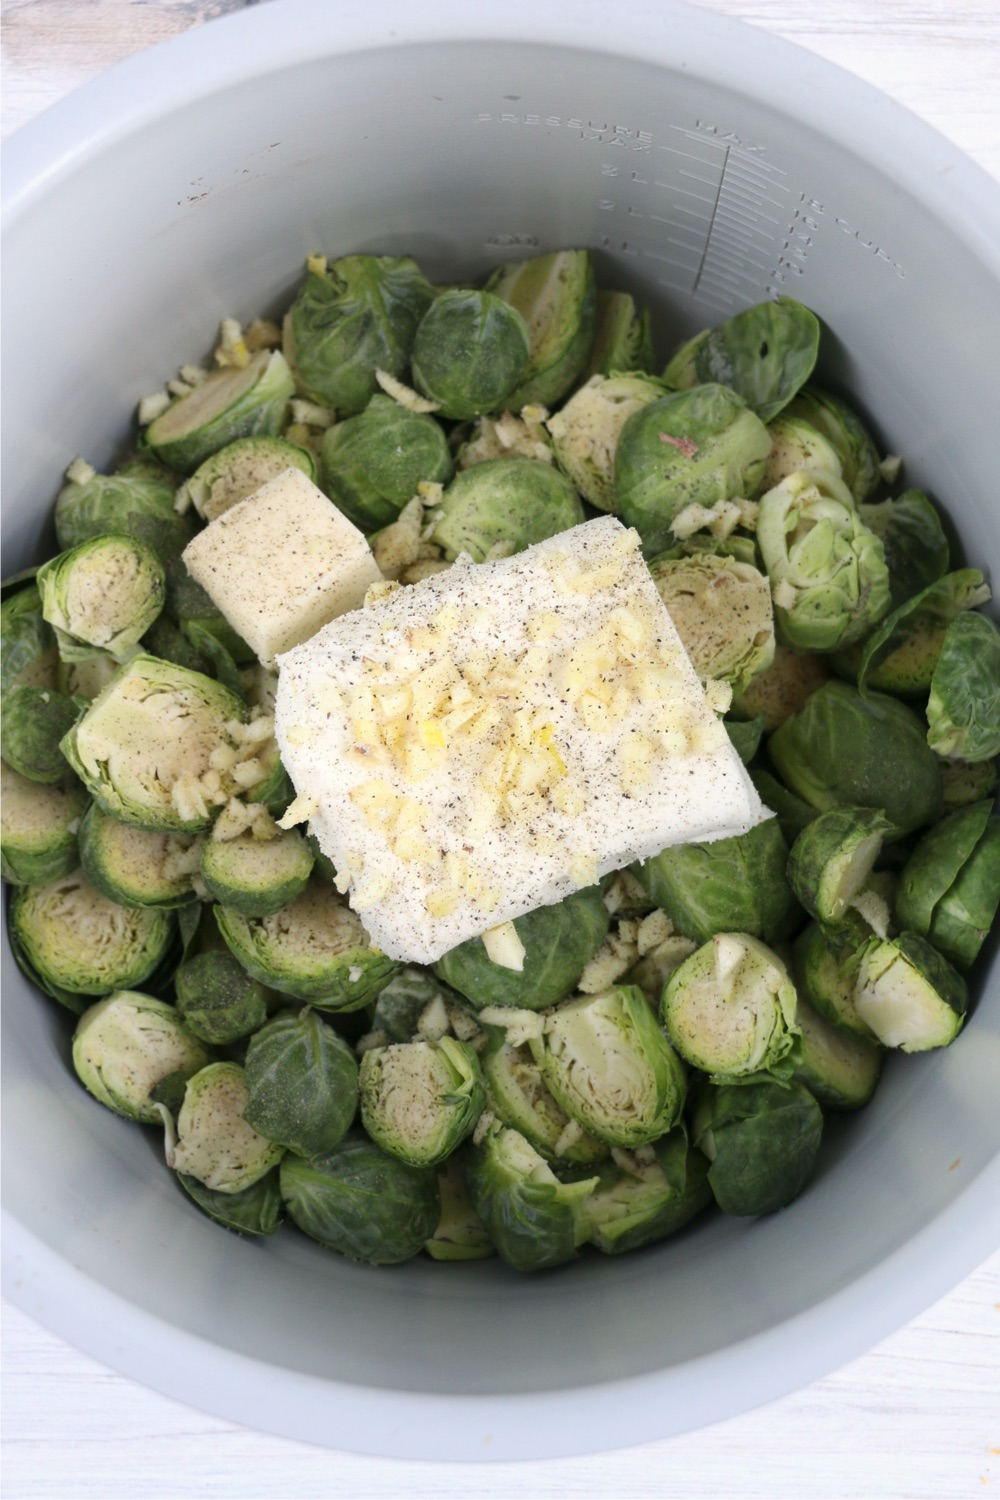 cream cheese, butter, garlic and seasonings on top of brussels sprouts in Instant Pot